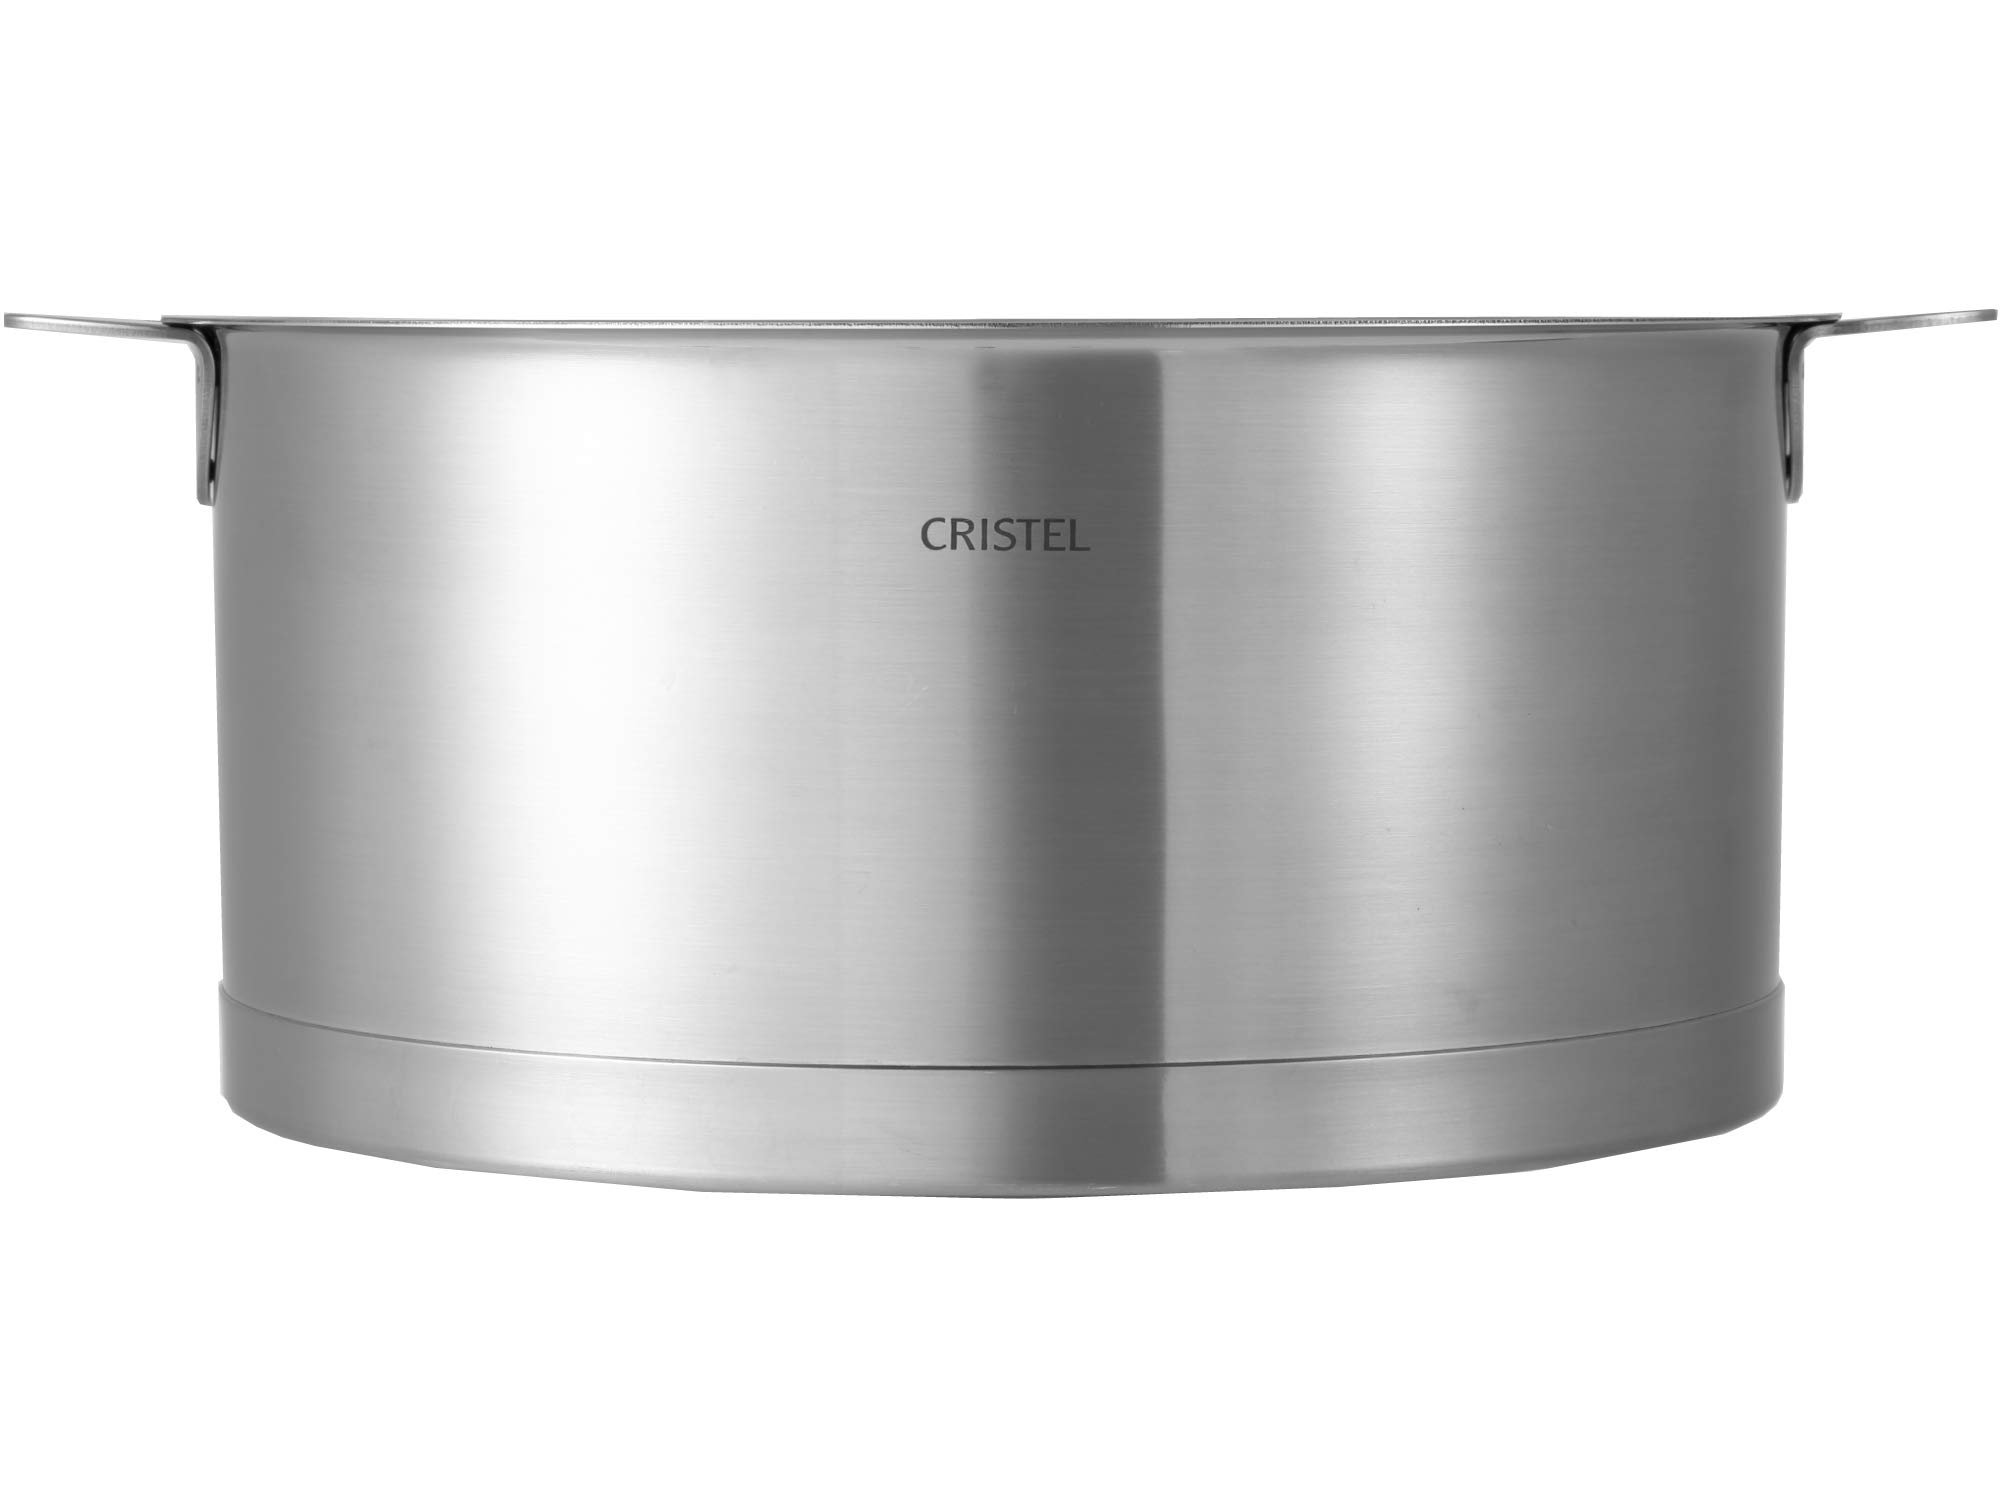 Faitout 24cm inox strate amovible, Cristel by Cristel (Image #1)